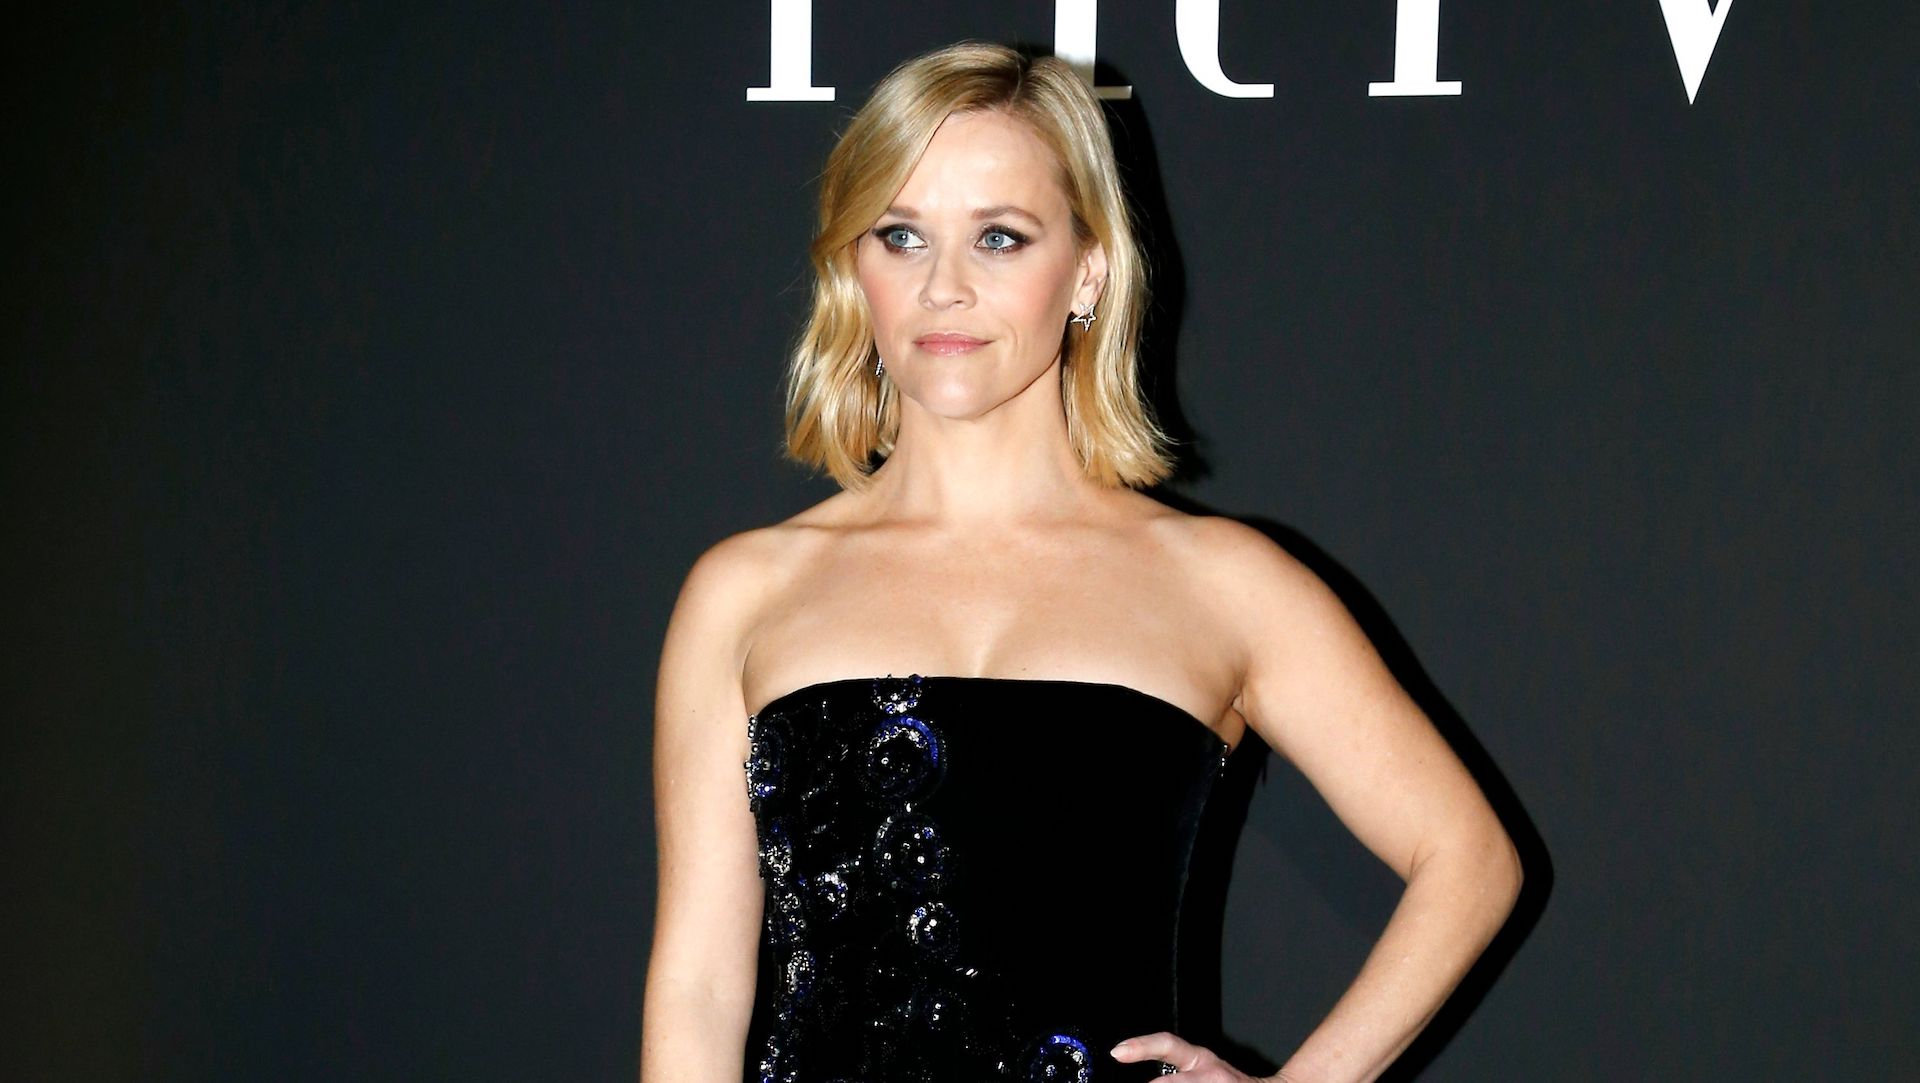 Reese Witherspoon Says Discussing Racism With Her 7-Year-Old Son Was 'Heartbreaking'